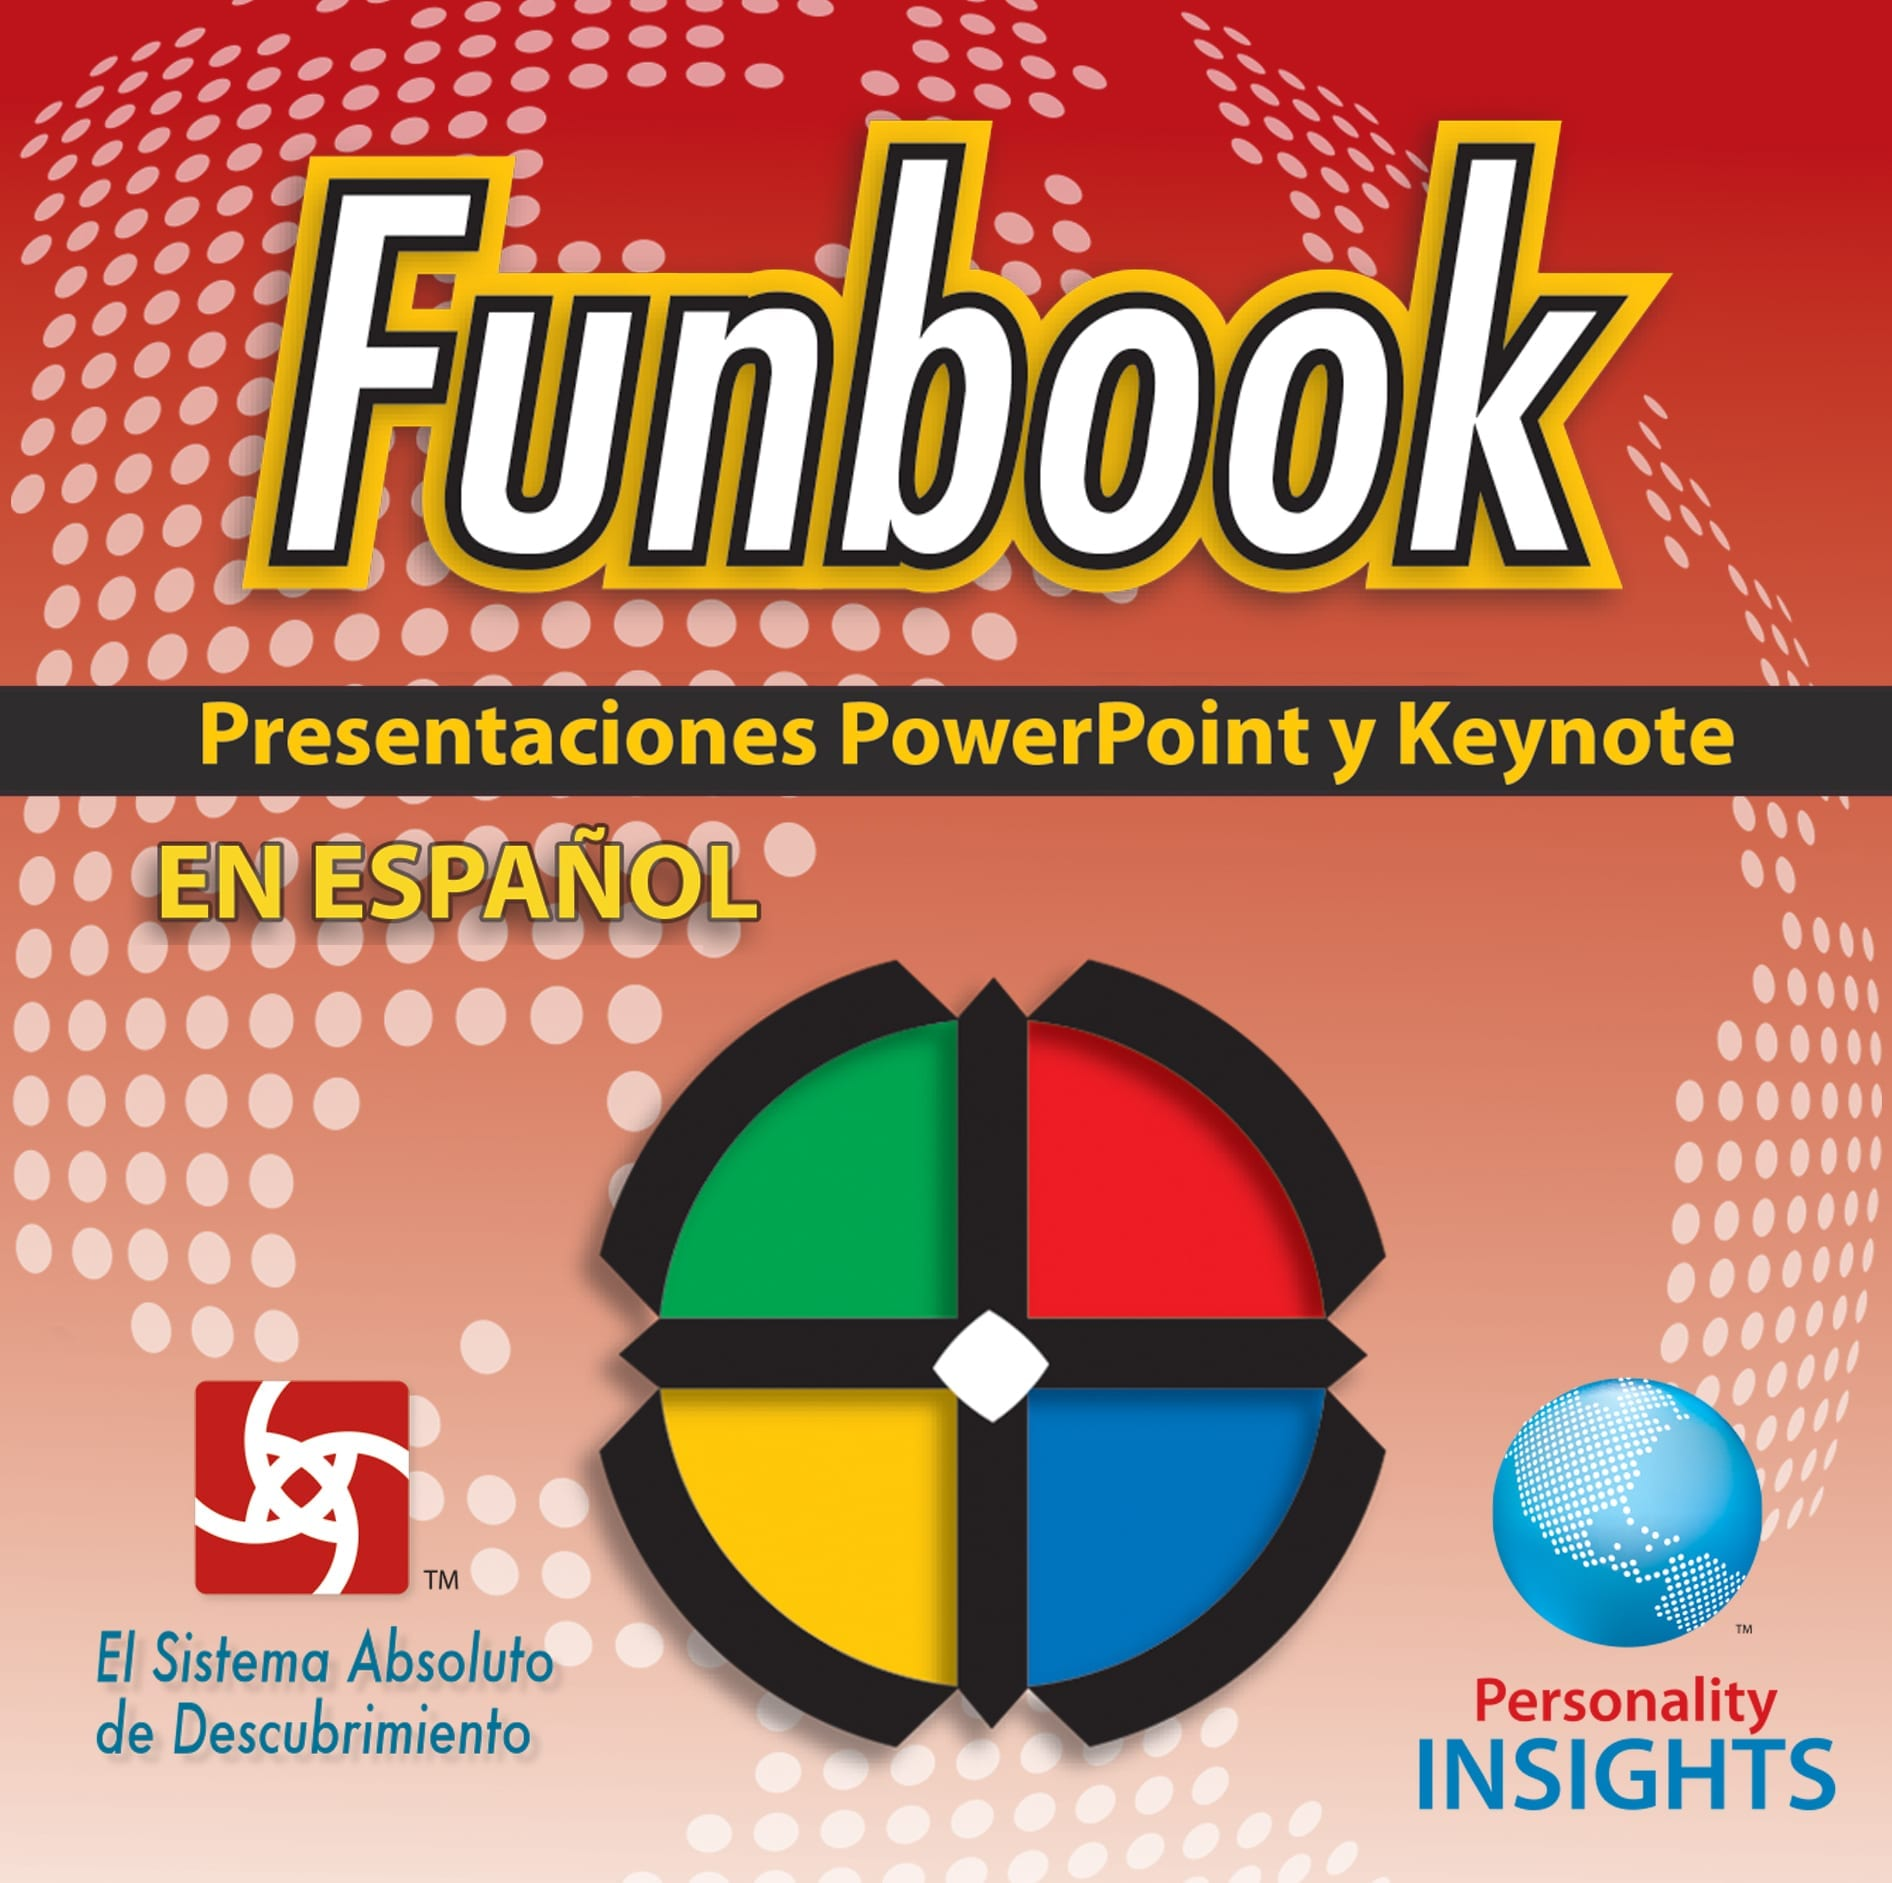 Power Point & Keynote Presentation For *SPANISH* Funbook